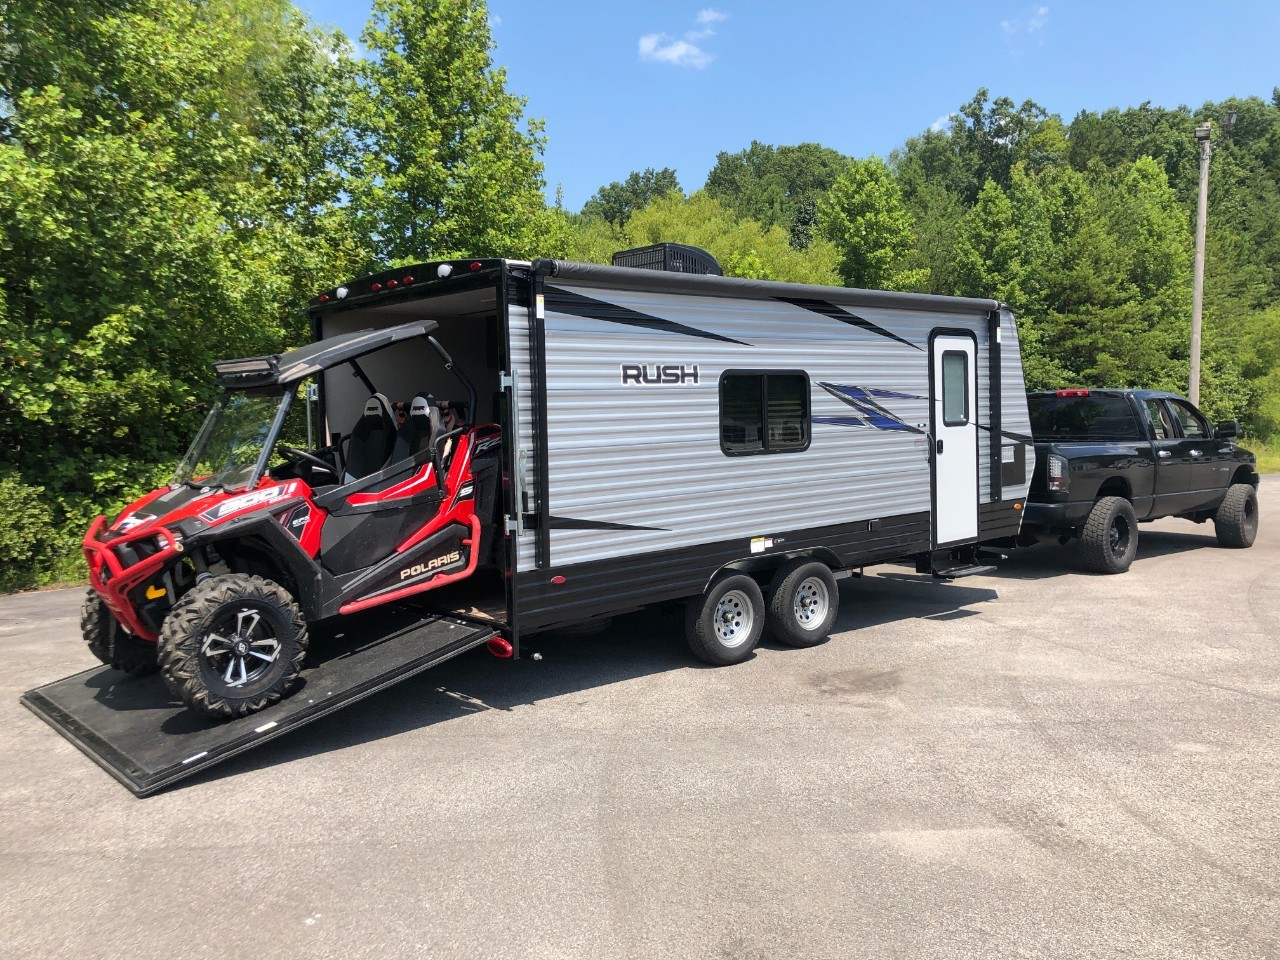 Earthroamer Expedition Xv-Lt For Sale - Other RVs - RV Trader